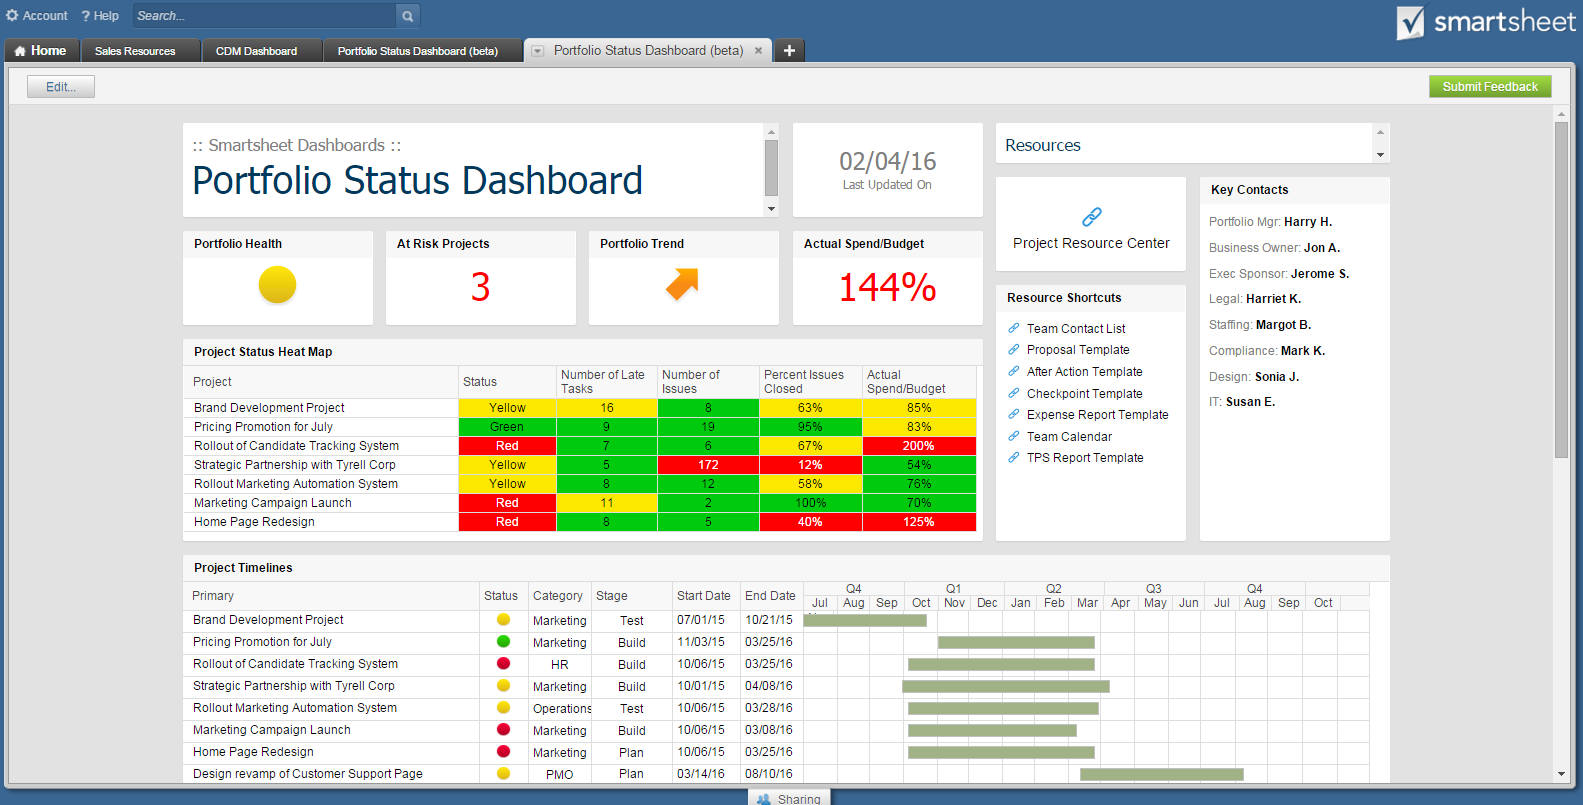 Smartsheet Dashboards